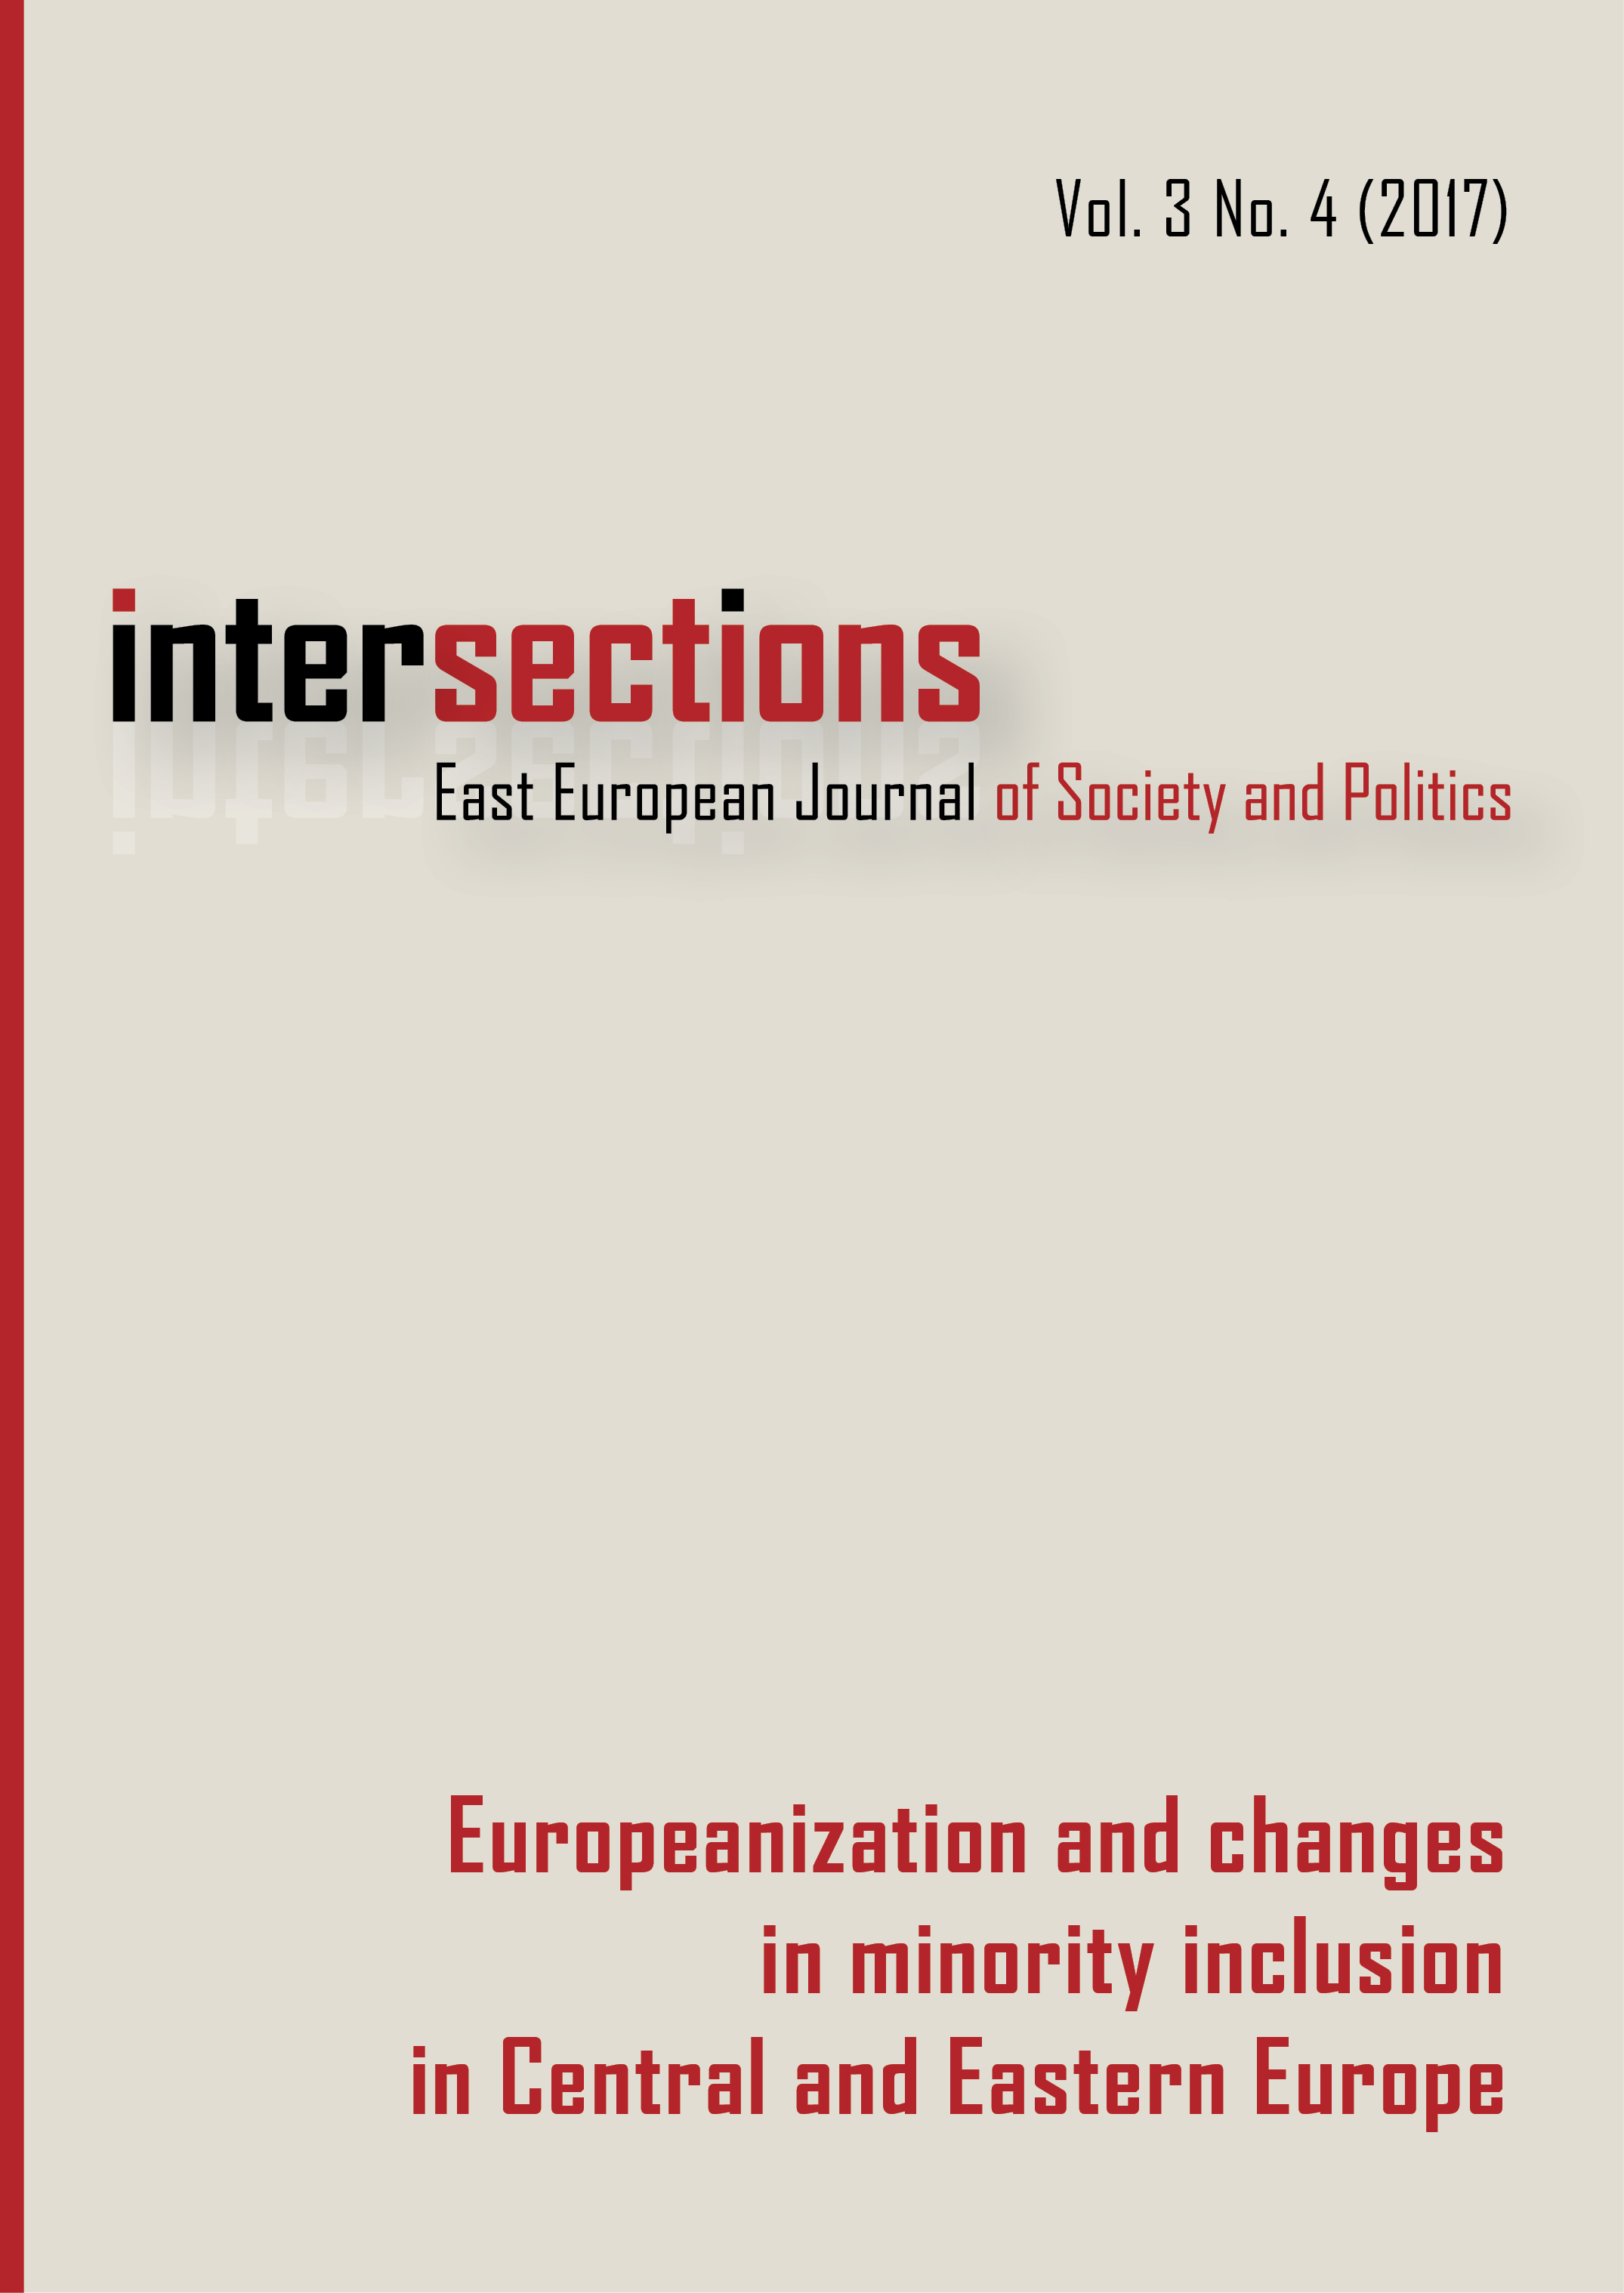 View Vol. 3 No. 4 (2017): Europeanization and Changes in Minority Inclusion in Central and Eastern Europe